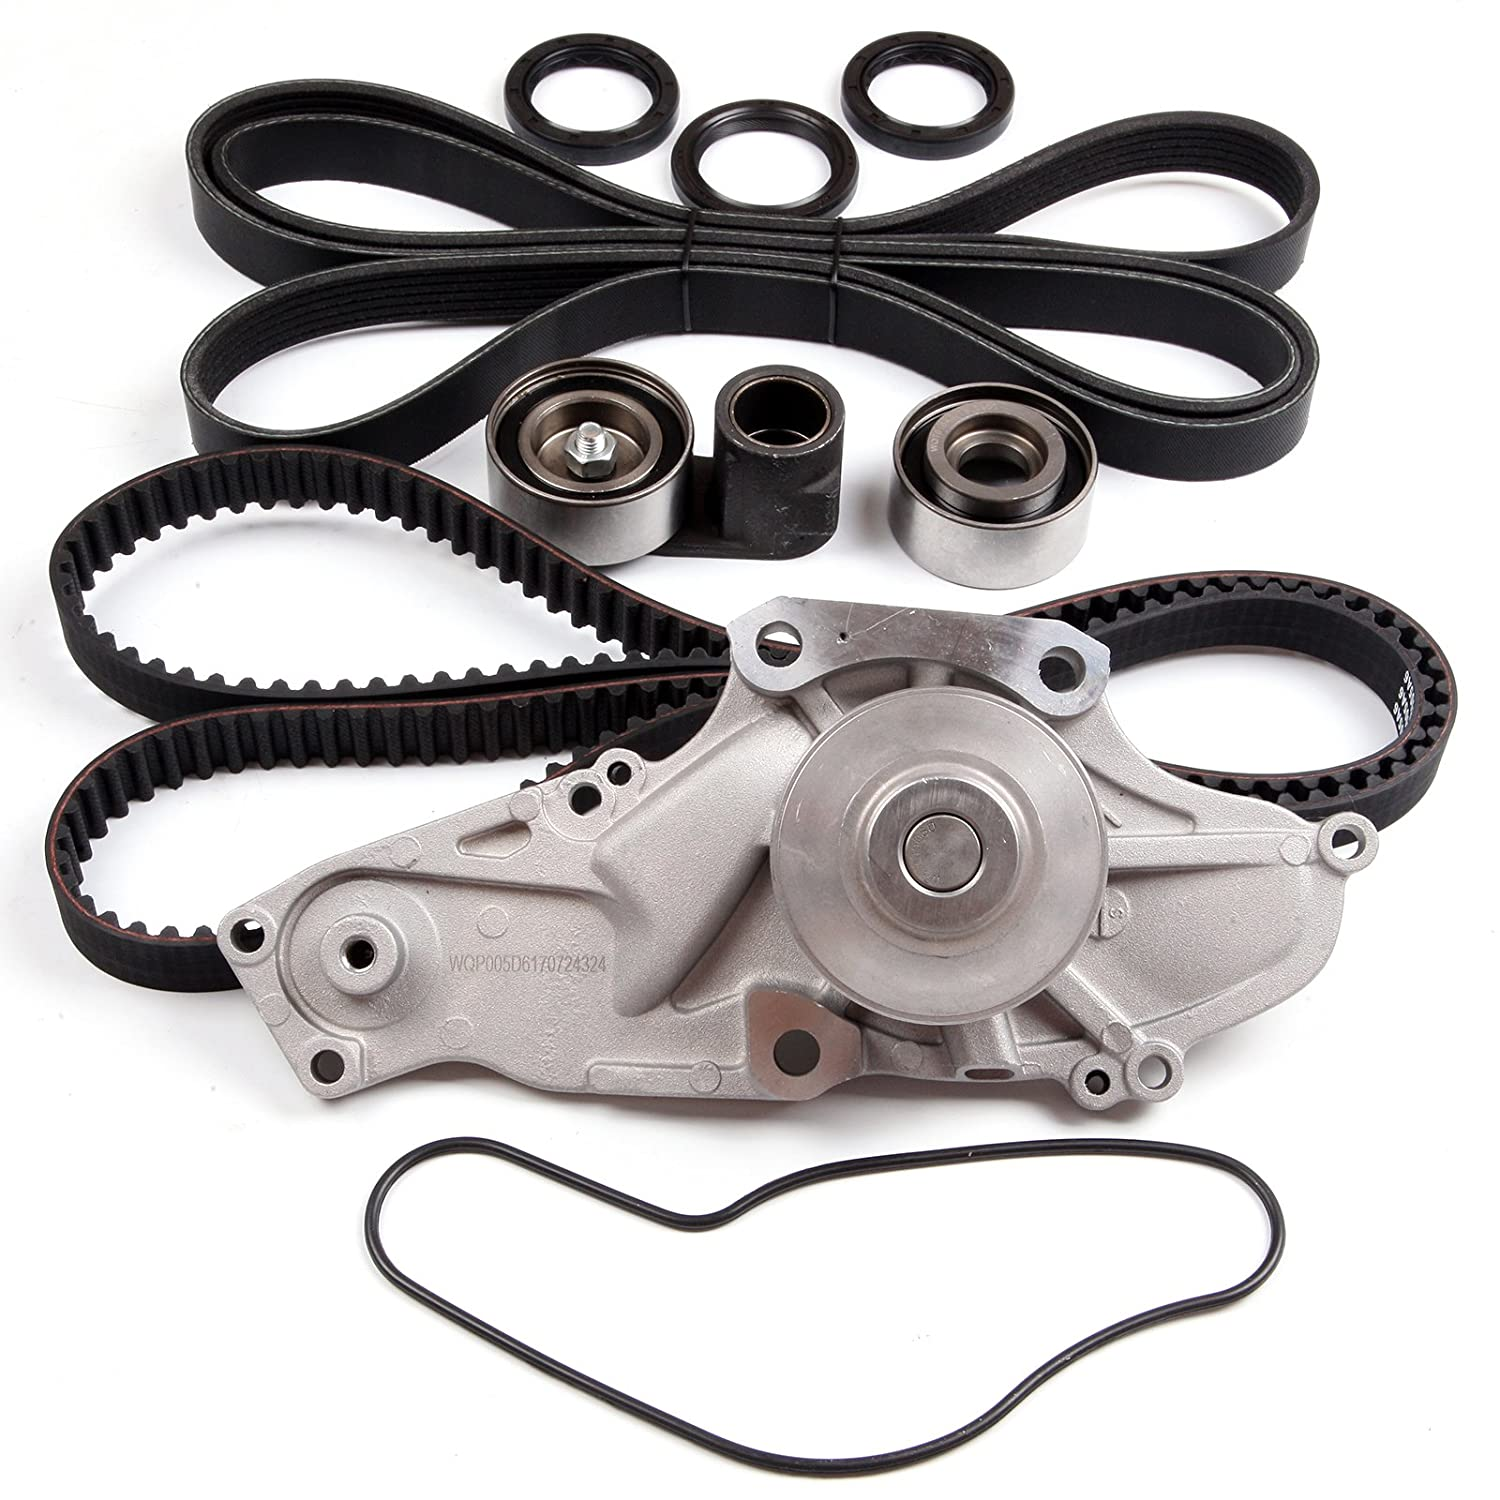 ECCPP Timing Belt W/Water Pump Thermostat Kit For 2003-2014 Honda Acura 3.0L 3.5L V6 110323-5211-1731021